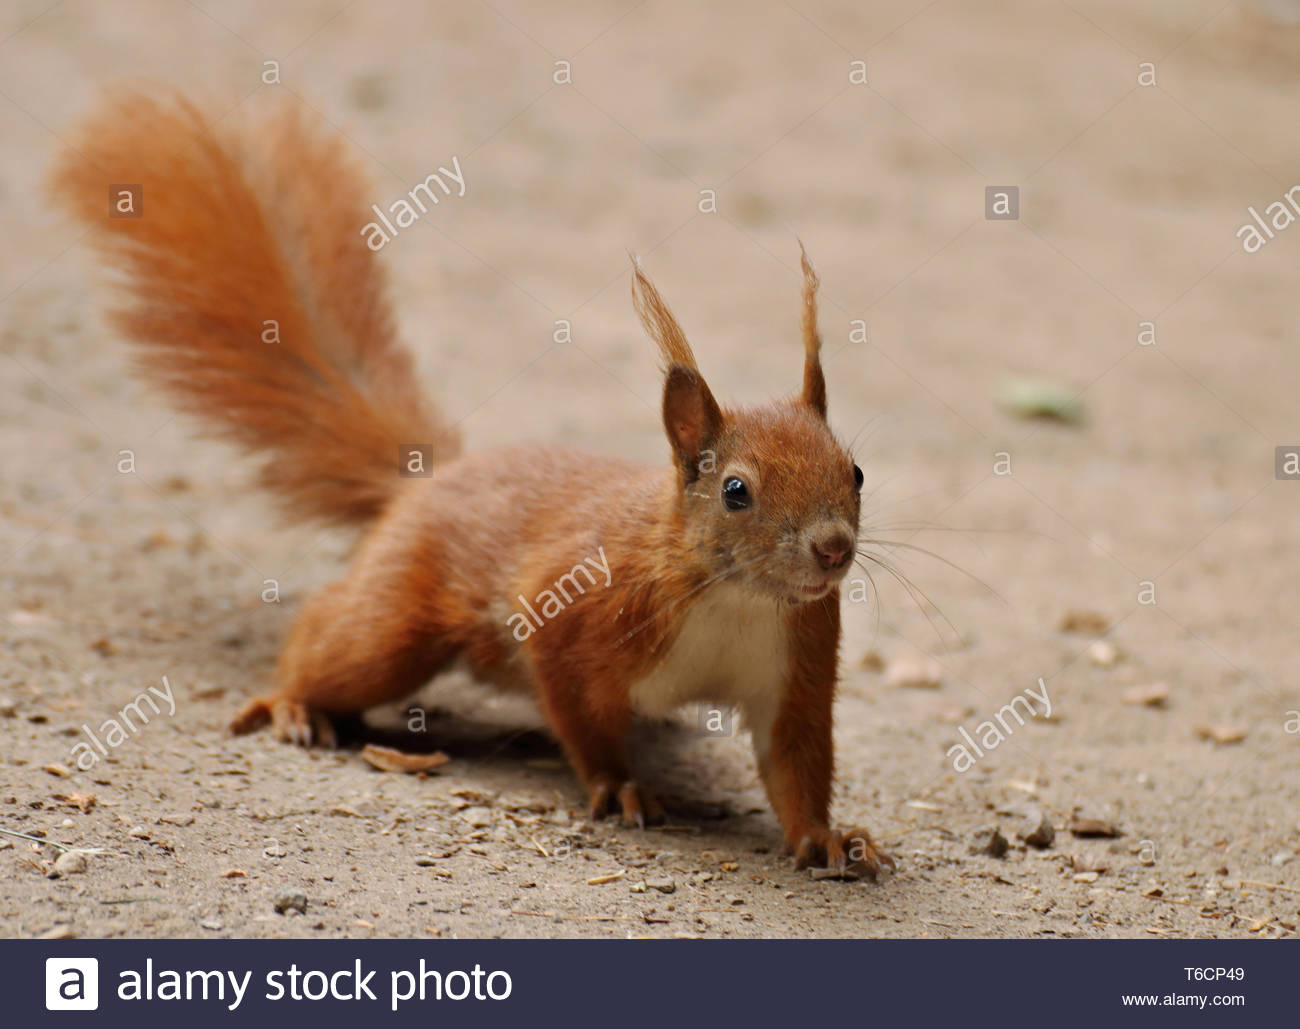 Clever squirrel - Stock Image